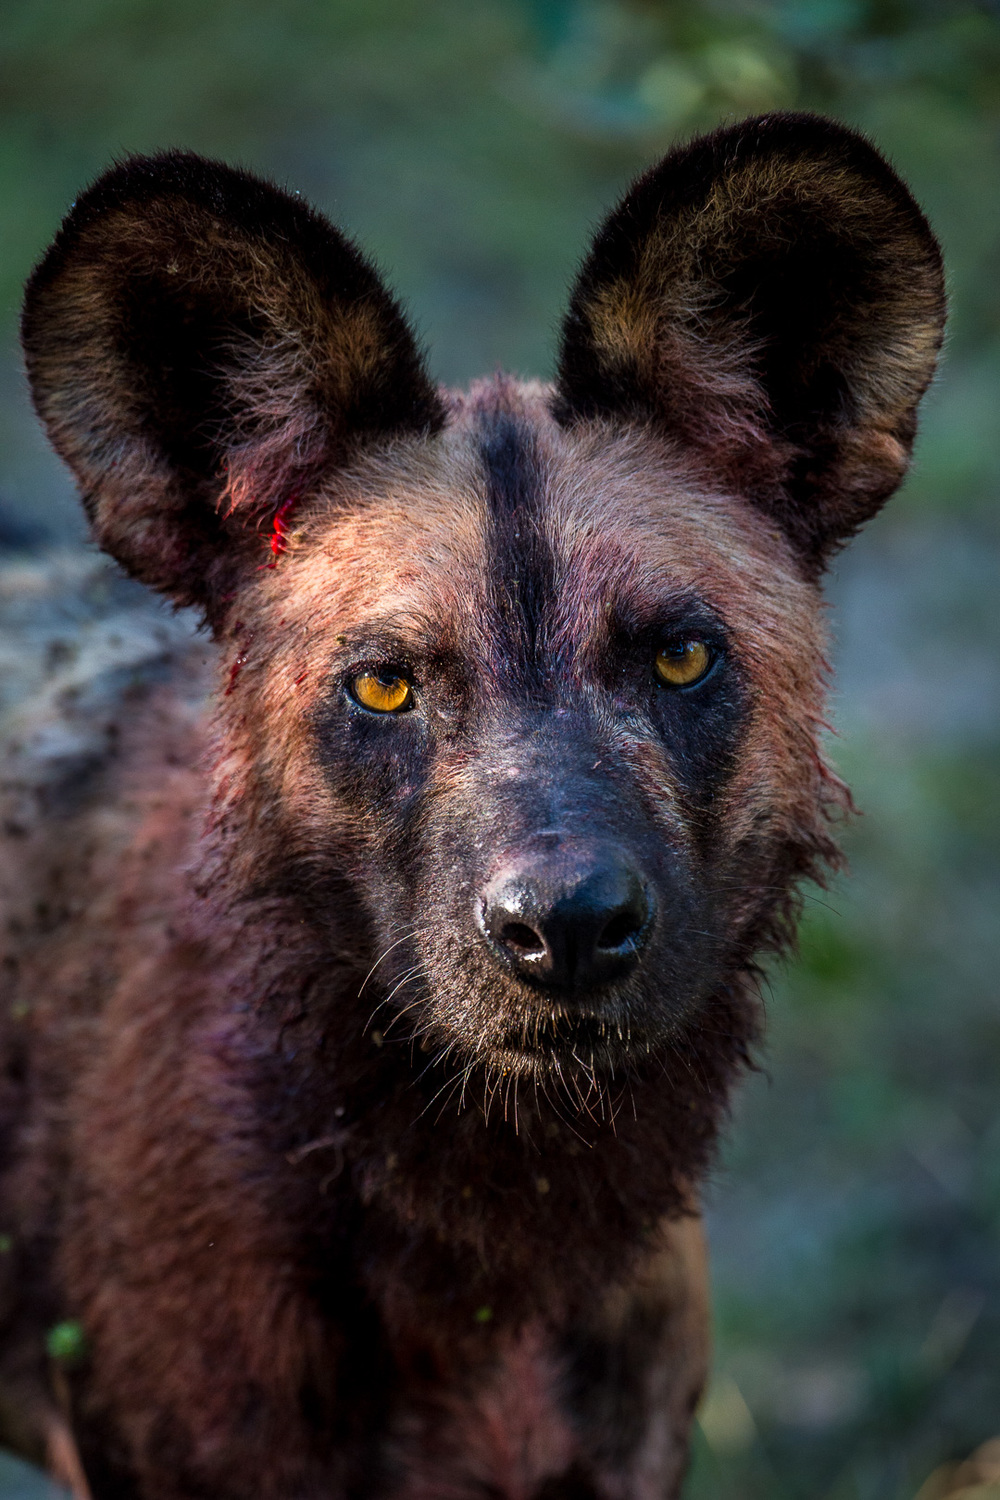 Those ears! The endangered African Wild dog! One of my favorite top predators photographed in Selous, Tanzania. Among the best hunters in Africa, wild dogs (or painted dogs) have a higher kill rate than lions and can take down antelope that weigh as much as 225 kilos (500 pounds). They are notorious for a grisly efficiency that has made some people fear and hate them, if not shoot them on sight. This beautiful apex predator is important in its ecosystem and needs to be respected and protected! African wild dogs hunt in successful cooperative packs of 6 to 24 animals. Larger packs were more common before the dogs became endangered.